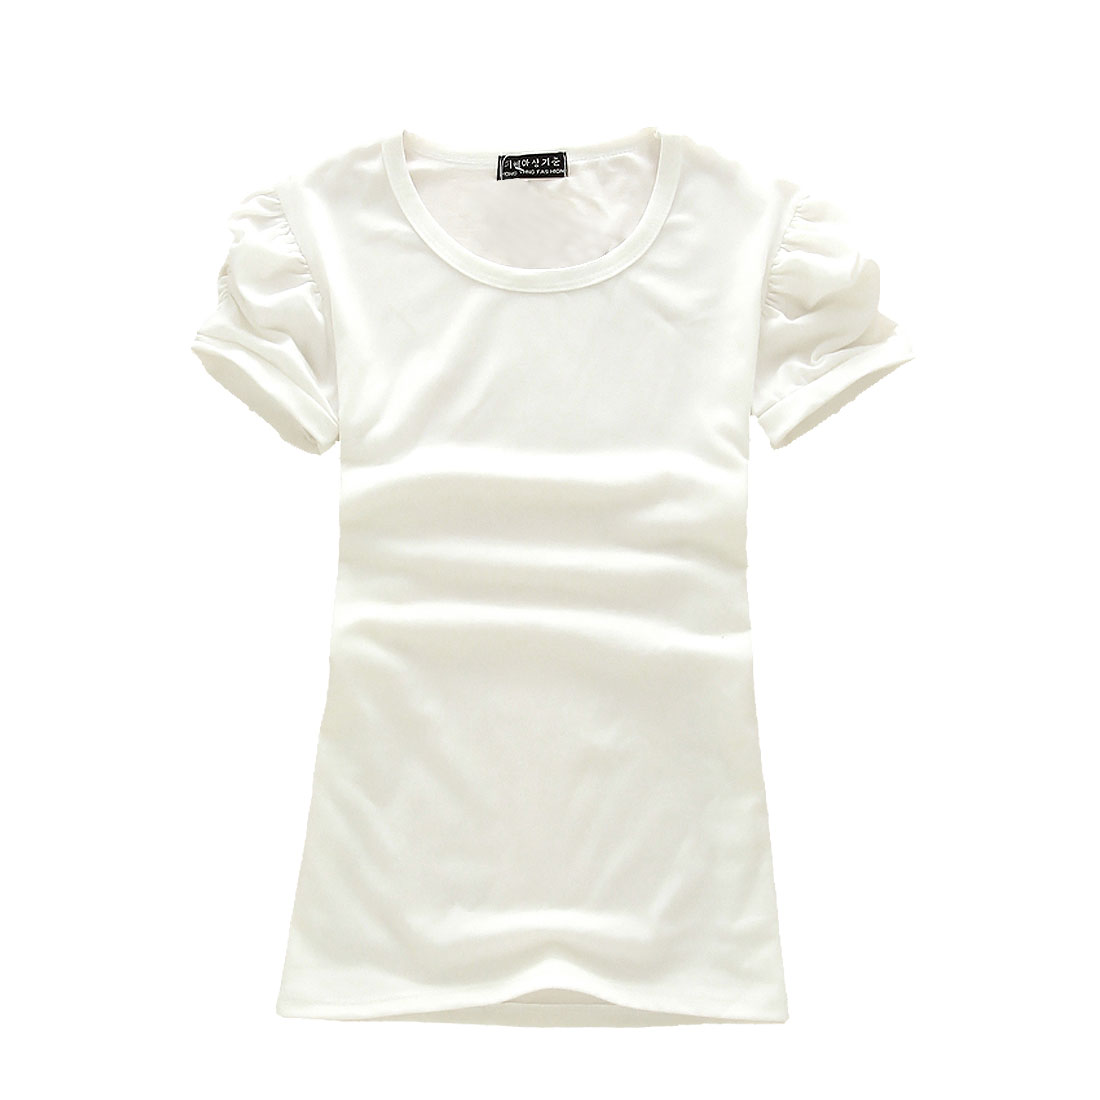 Short Ruffled Puff Sleeves Casual T-Shirt Blouse White XS for Ladies